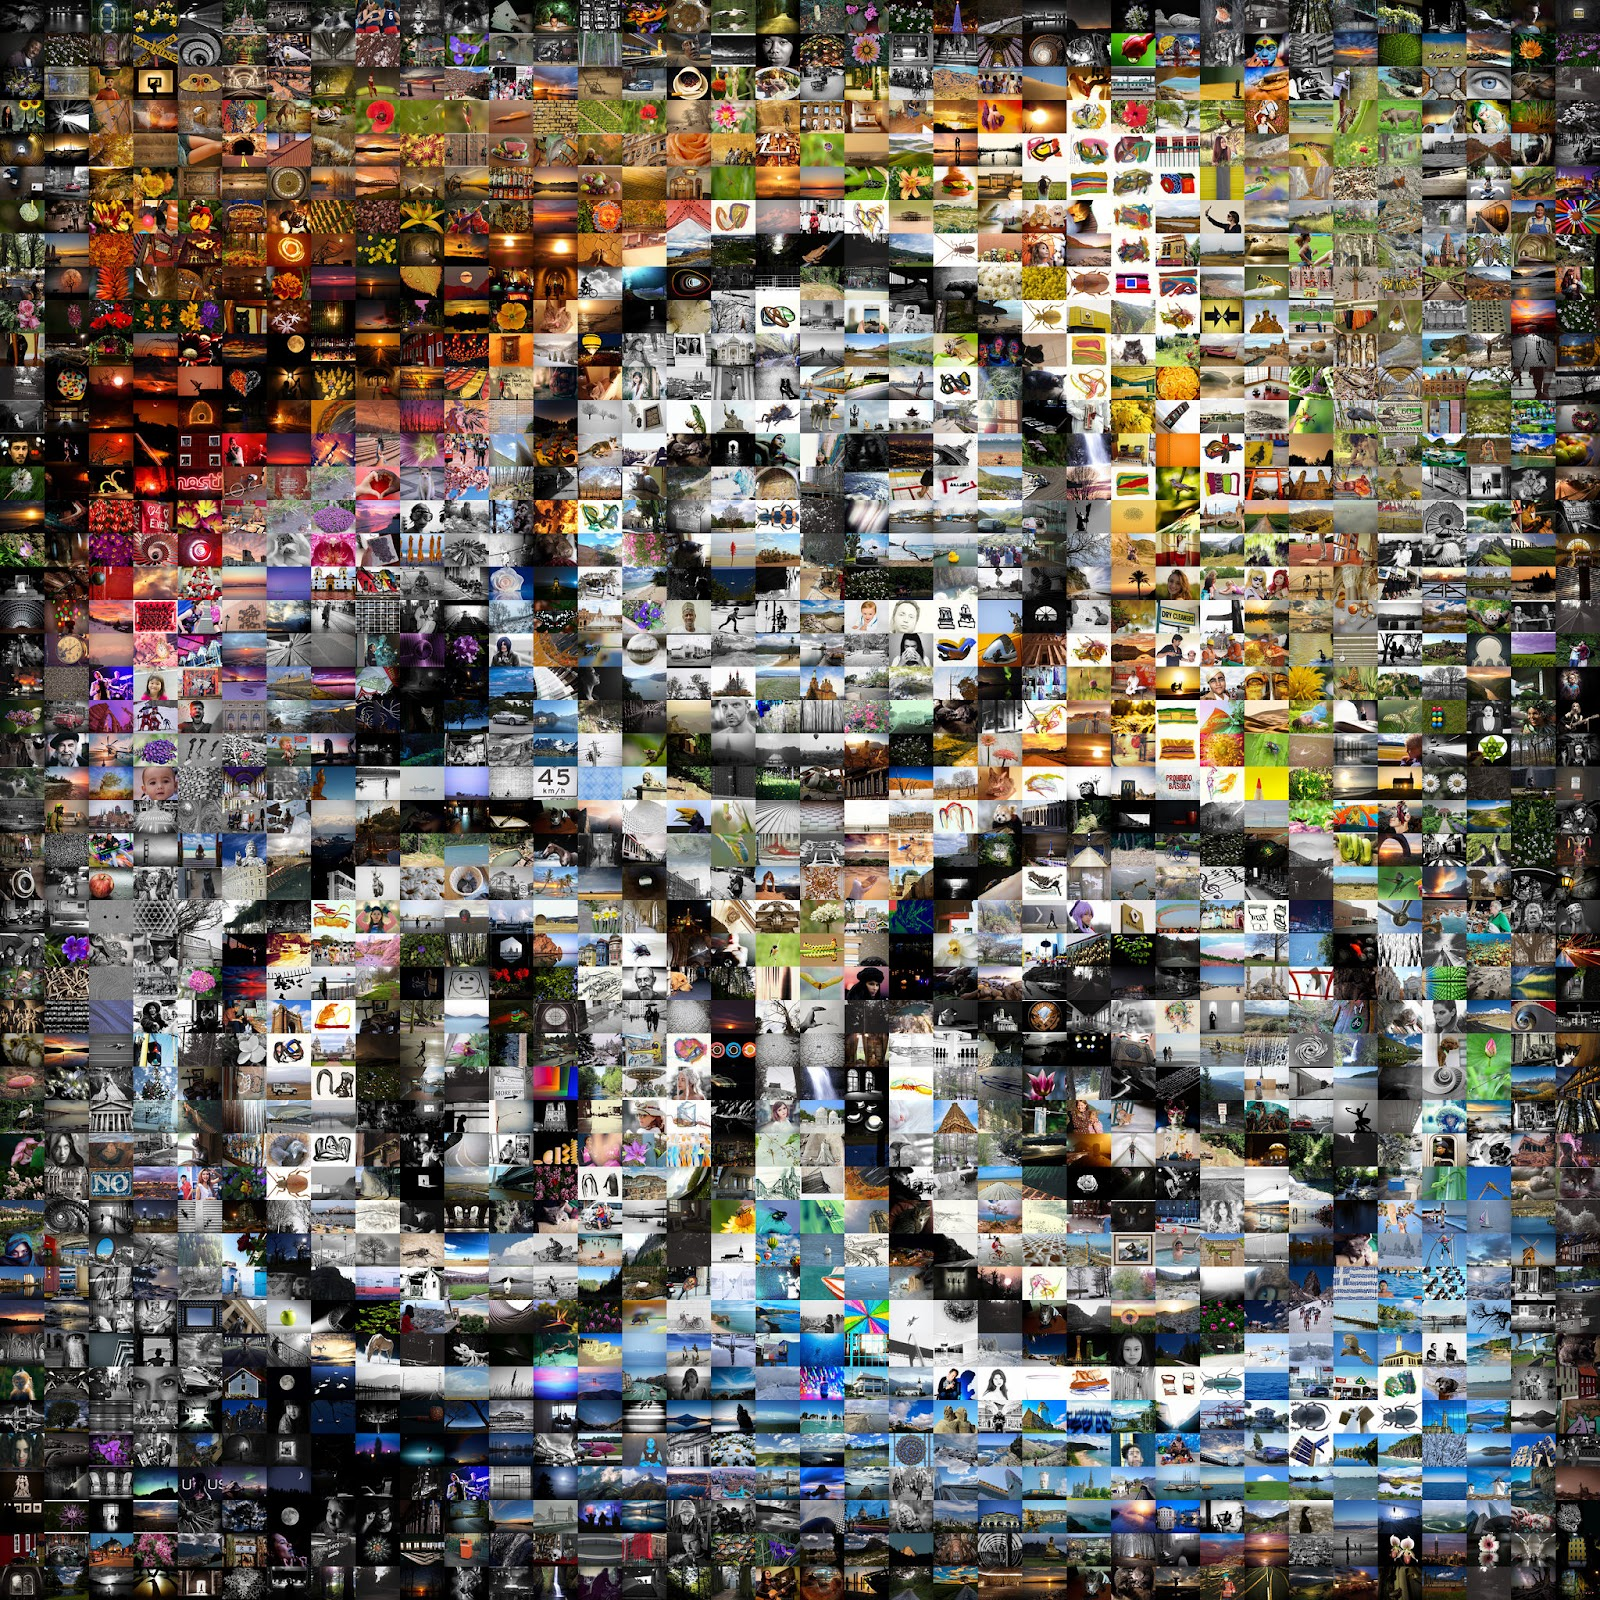 image with the letters CC 0 and C with a crossed out symbol across it. Image is a composite of 1000s of images in the background